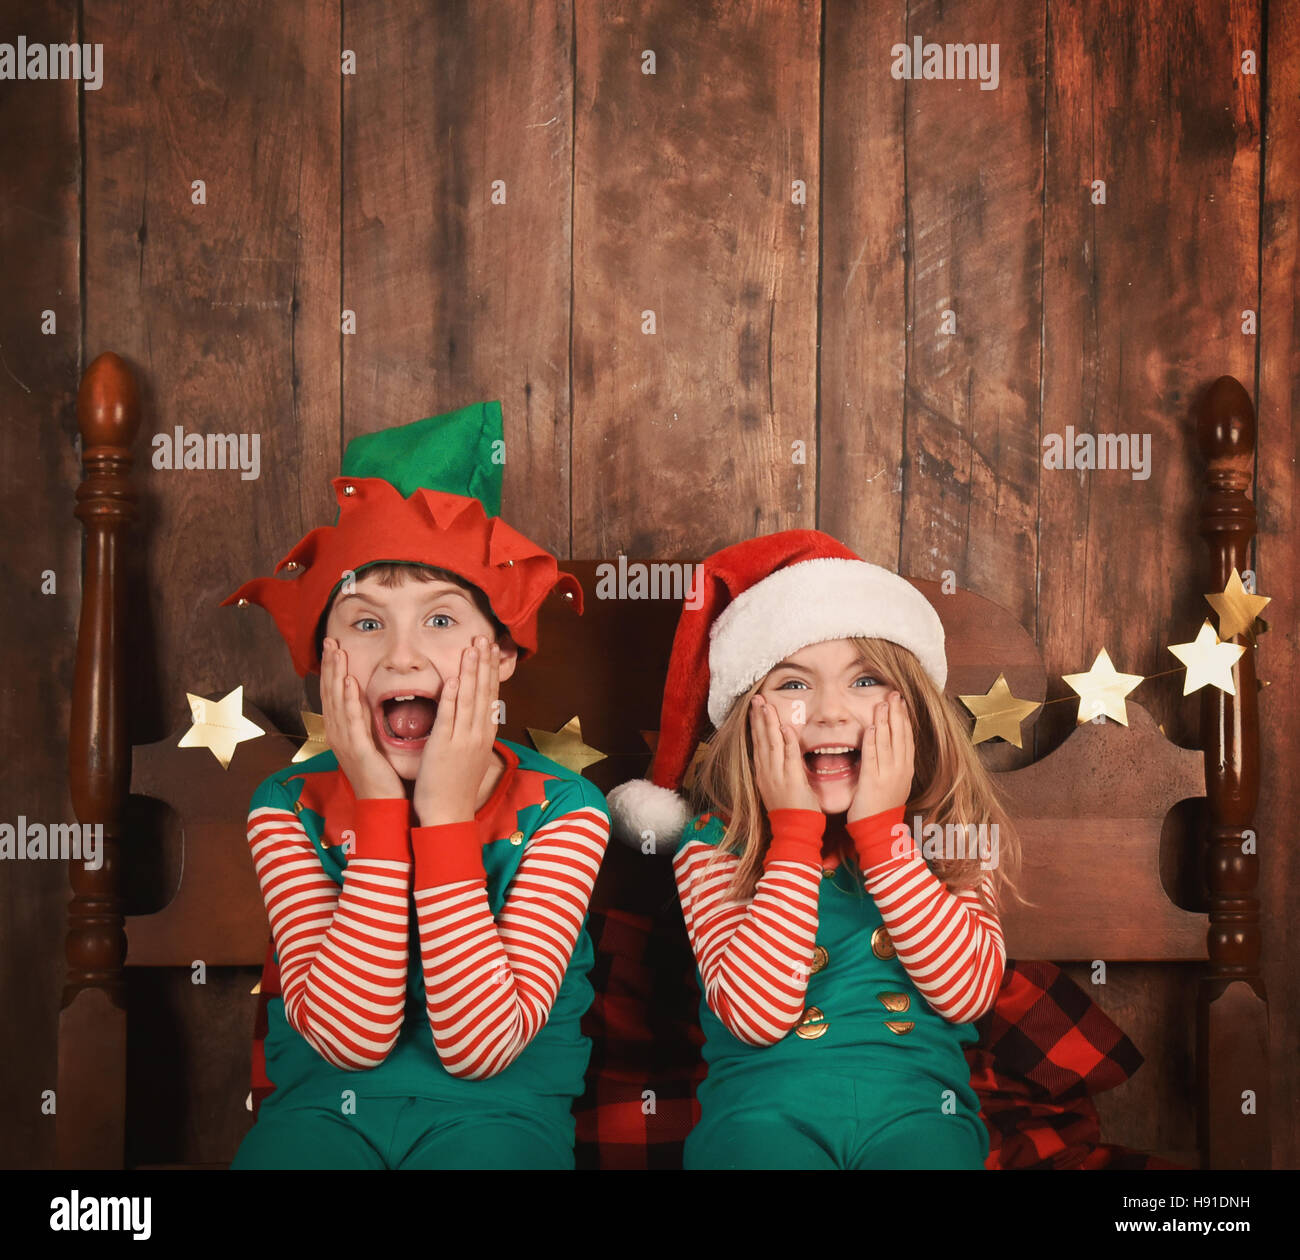 Two funny young children are surprised and excited sitting on a bed with Christmas pajamas with a wood wall. Use - Stock Image